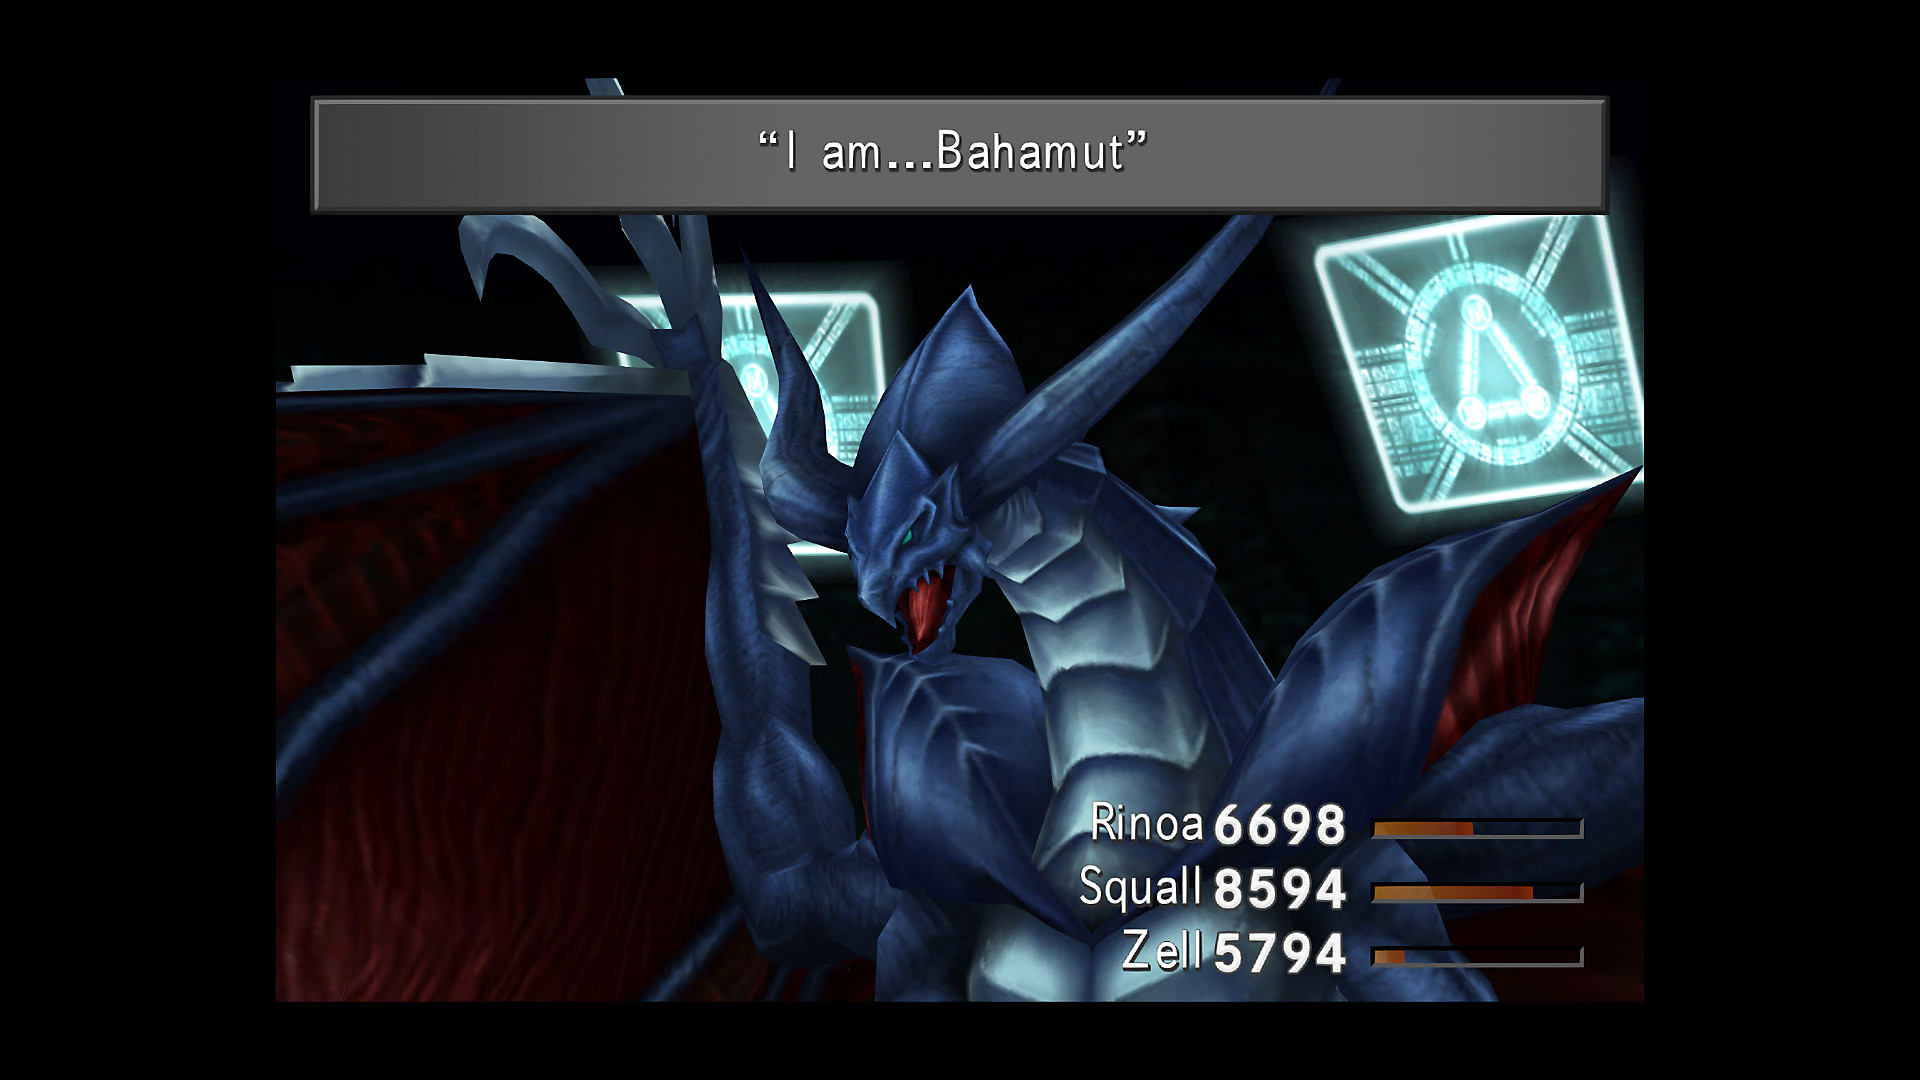 FINAL FANTASY VIII REMASTERED – Bahamut